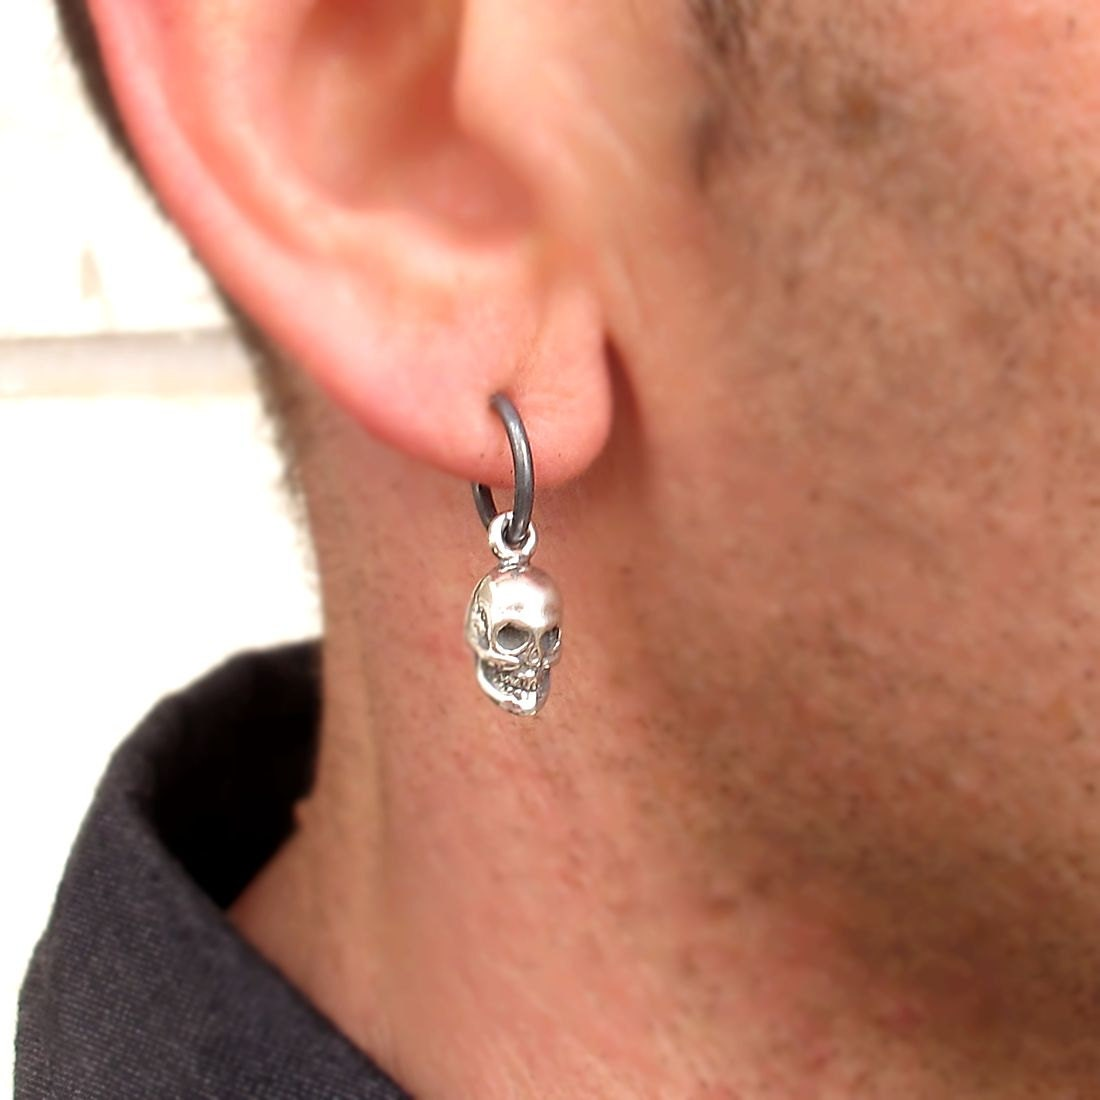 Mens Earring Skull Earring for Men Mens Jewelry Punk